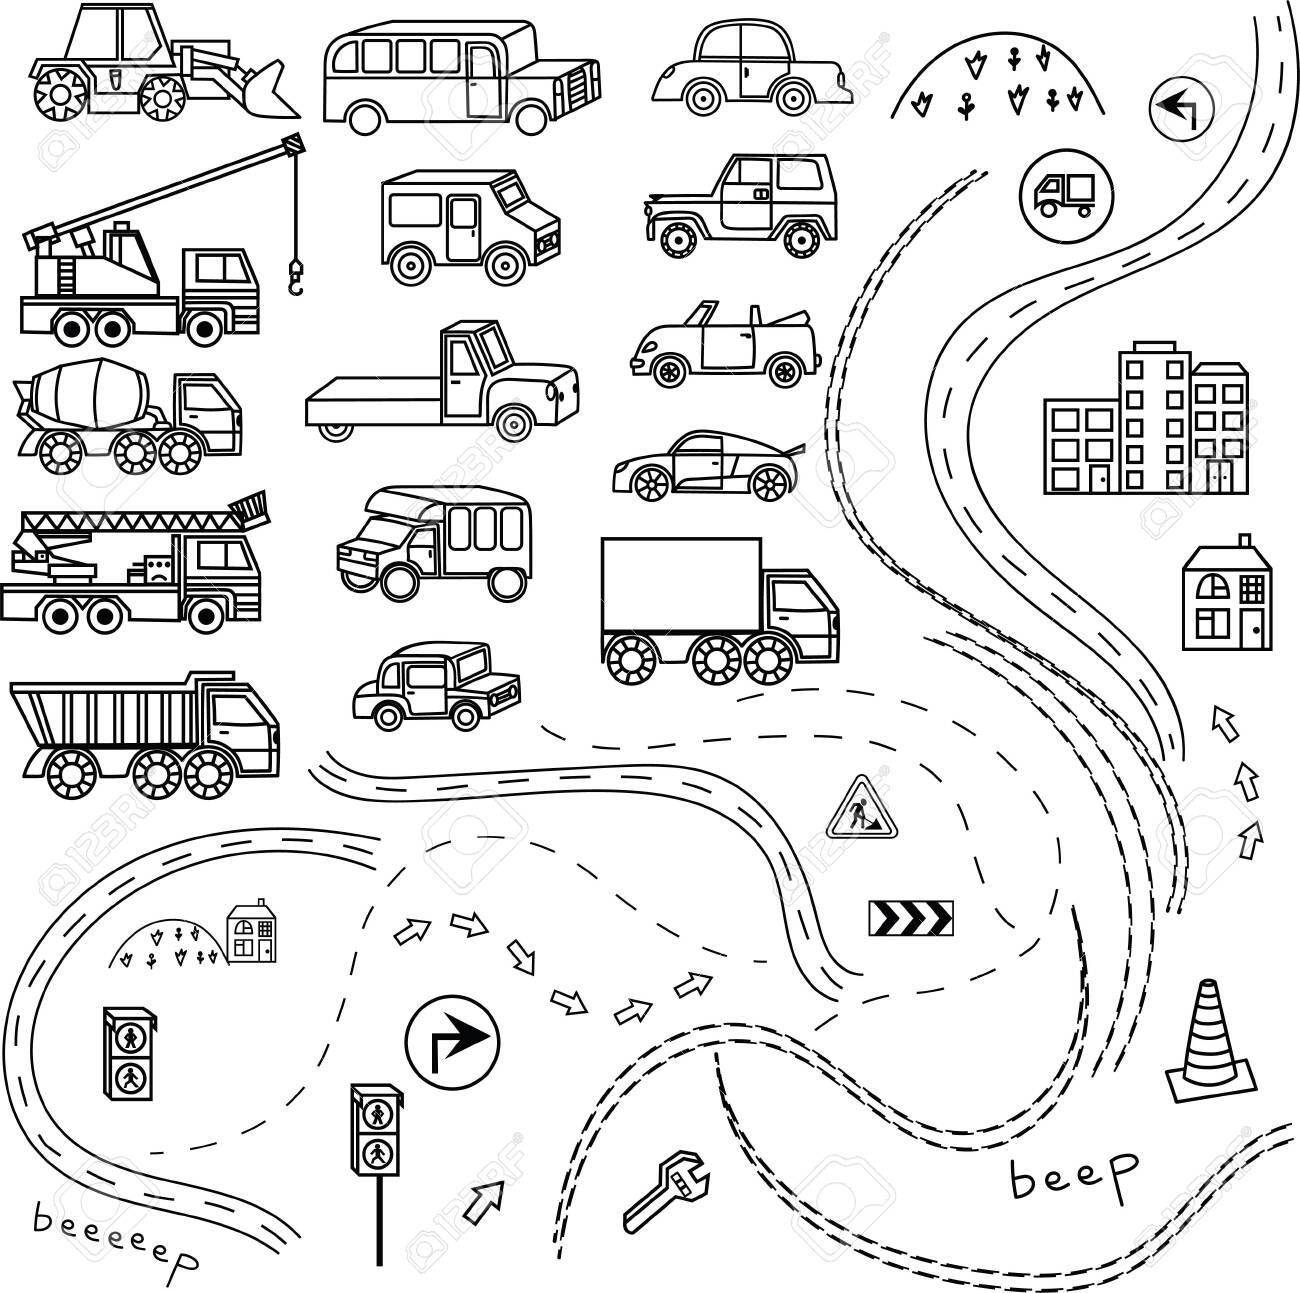 Set Of Car Black And White Cartoon Background Coloring Book Royalty Free Cliparts Vectors And Stock Illustration Image 141351560